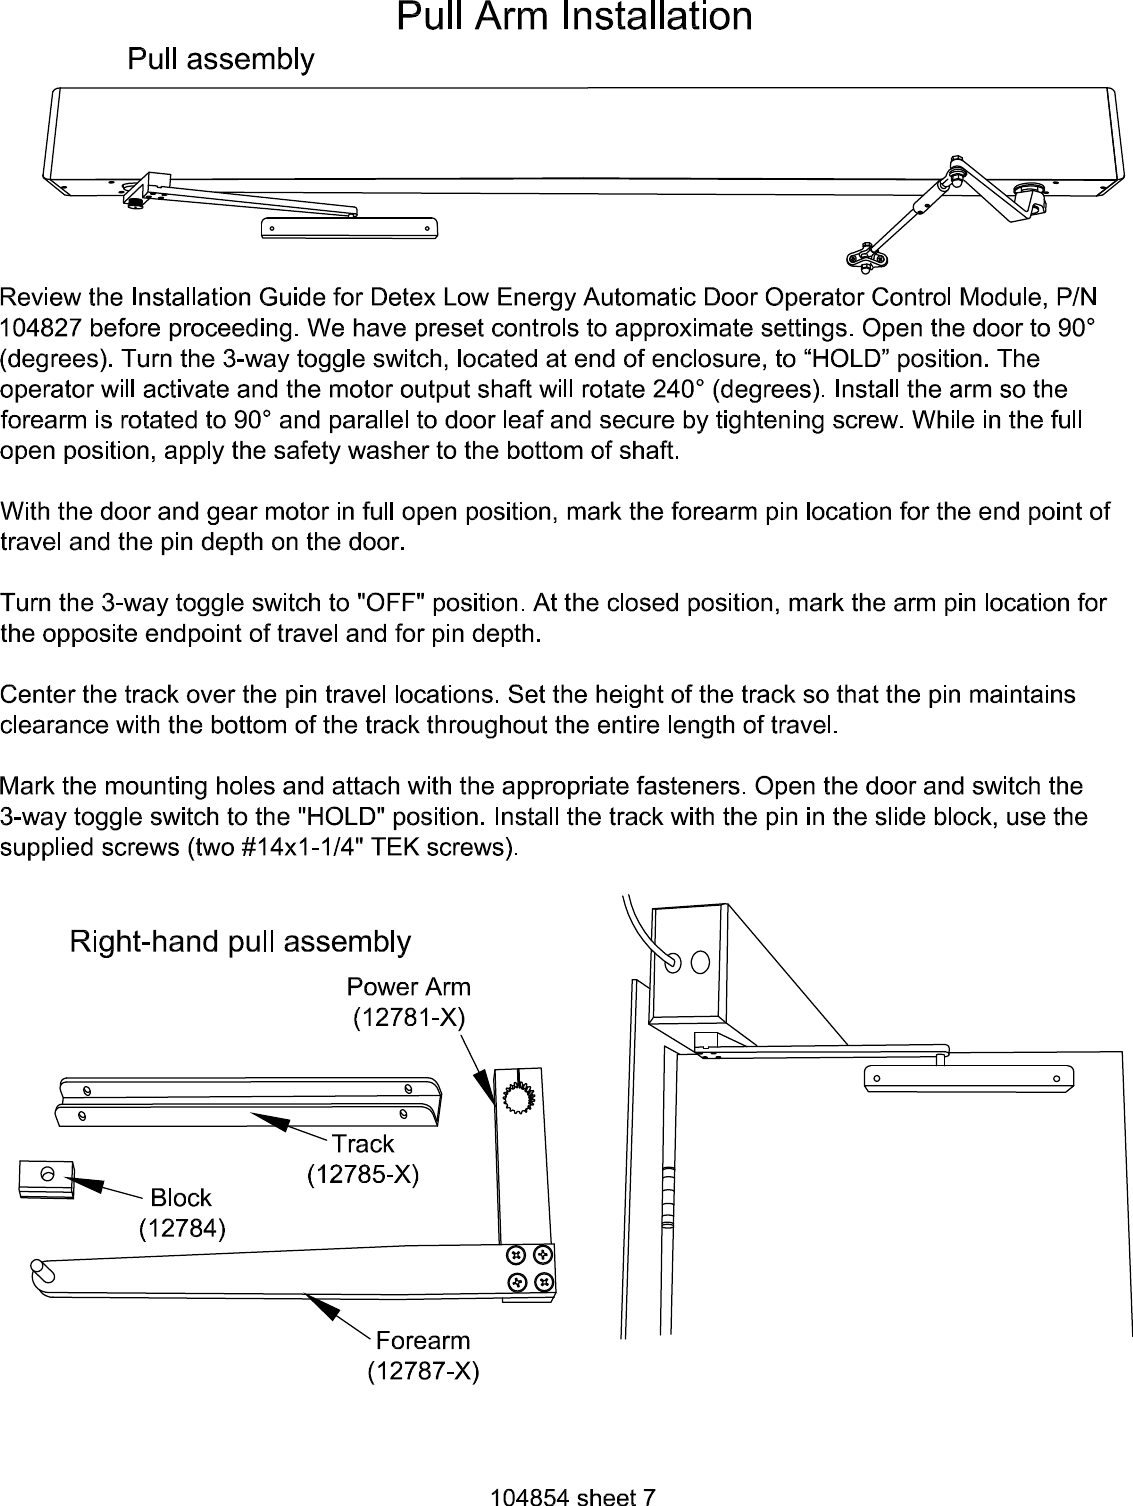 Detex R Dual Egress Ao19 3 Low Energy Automatic Door Operator X 10 Way Switch Wiring Diagram Page 7 Of 12